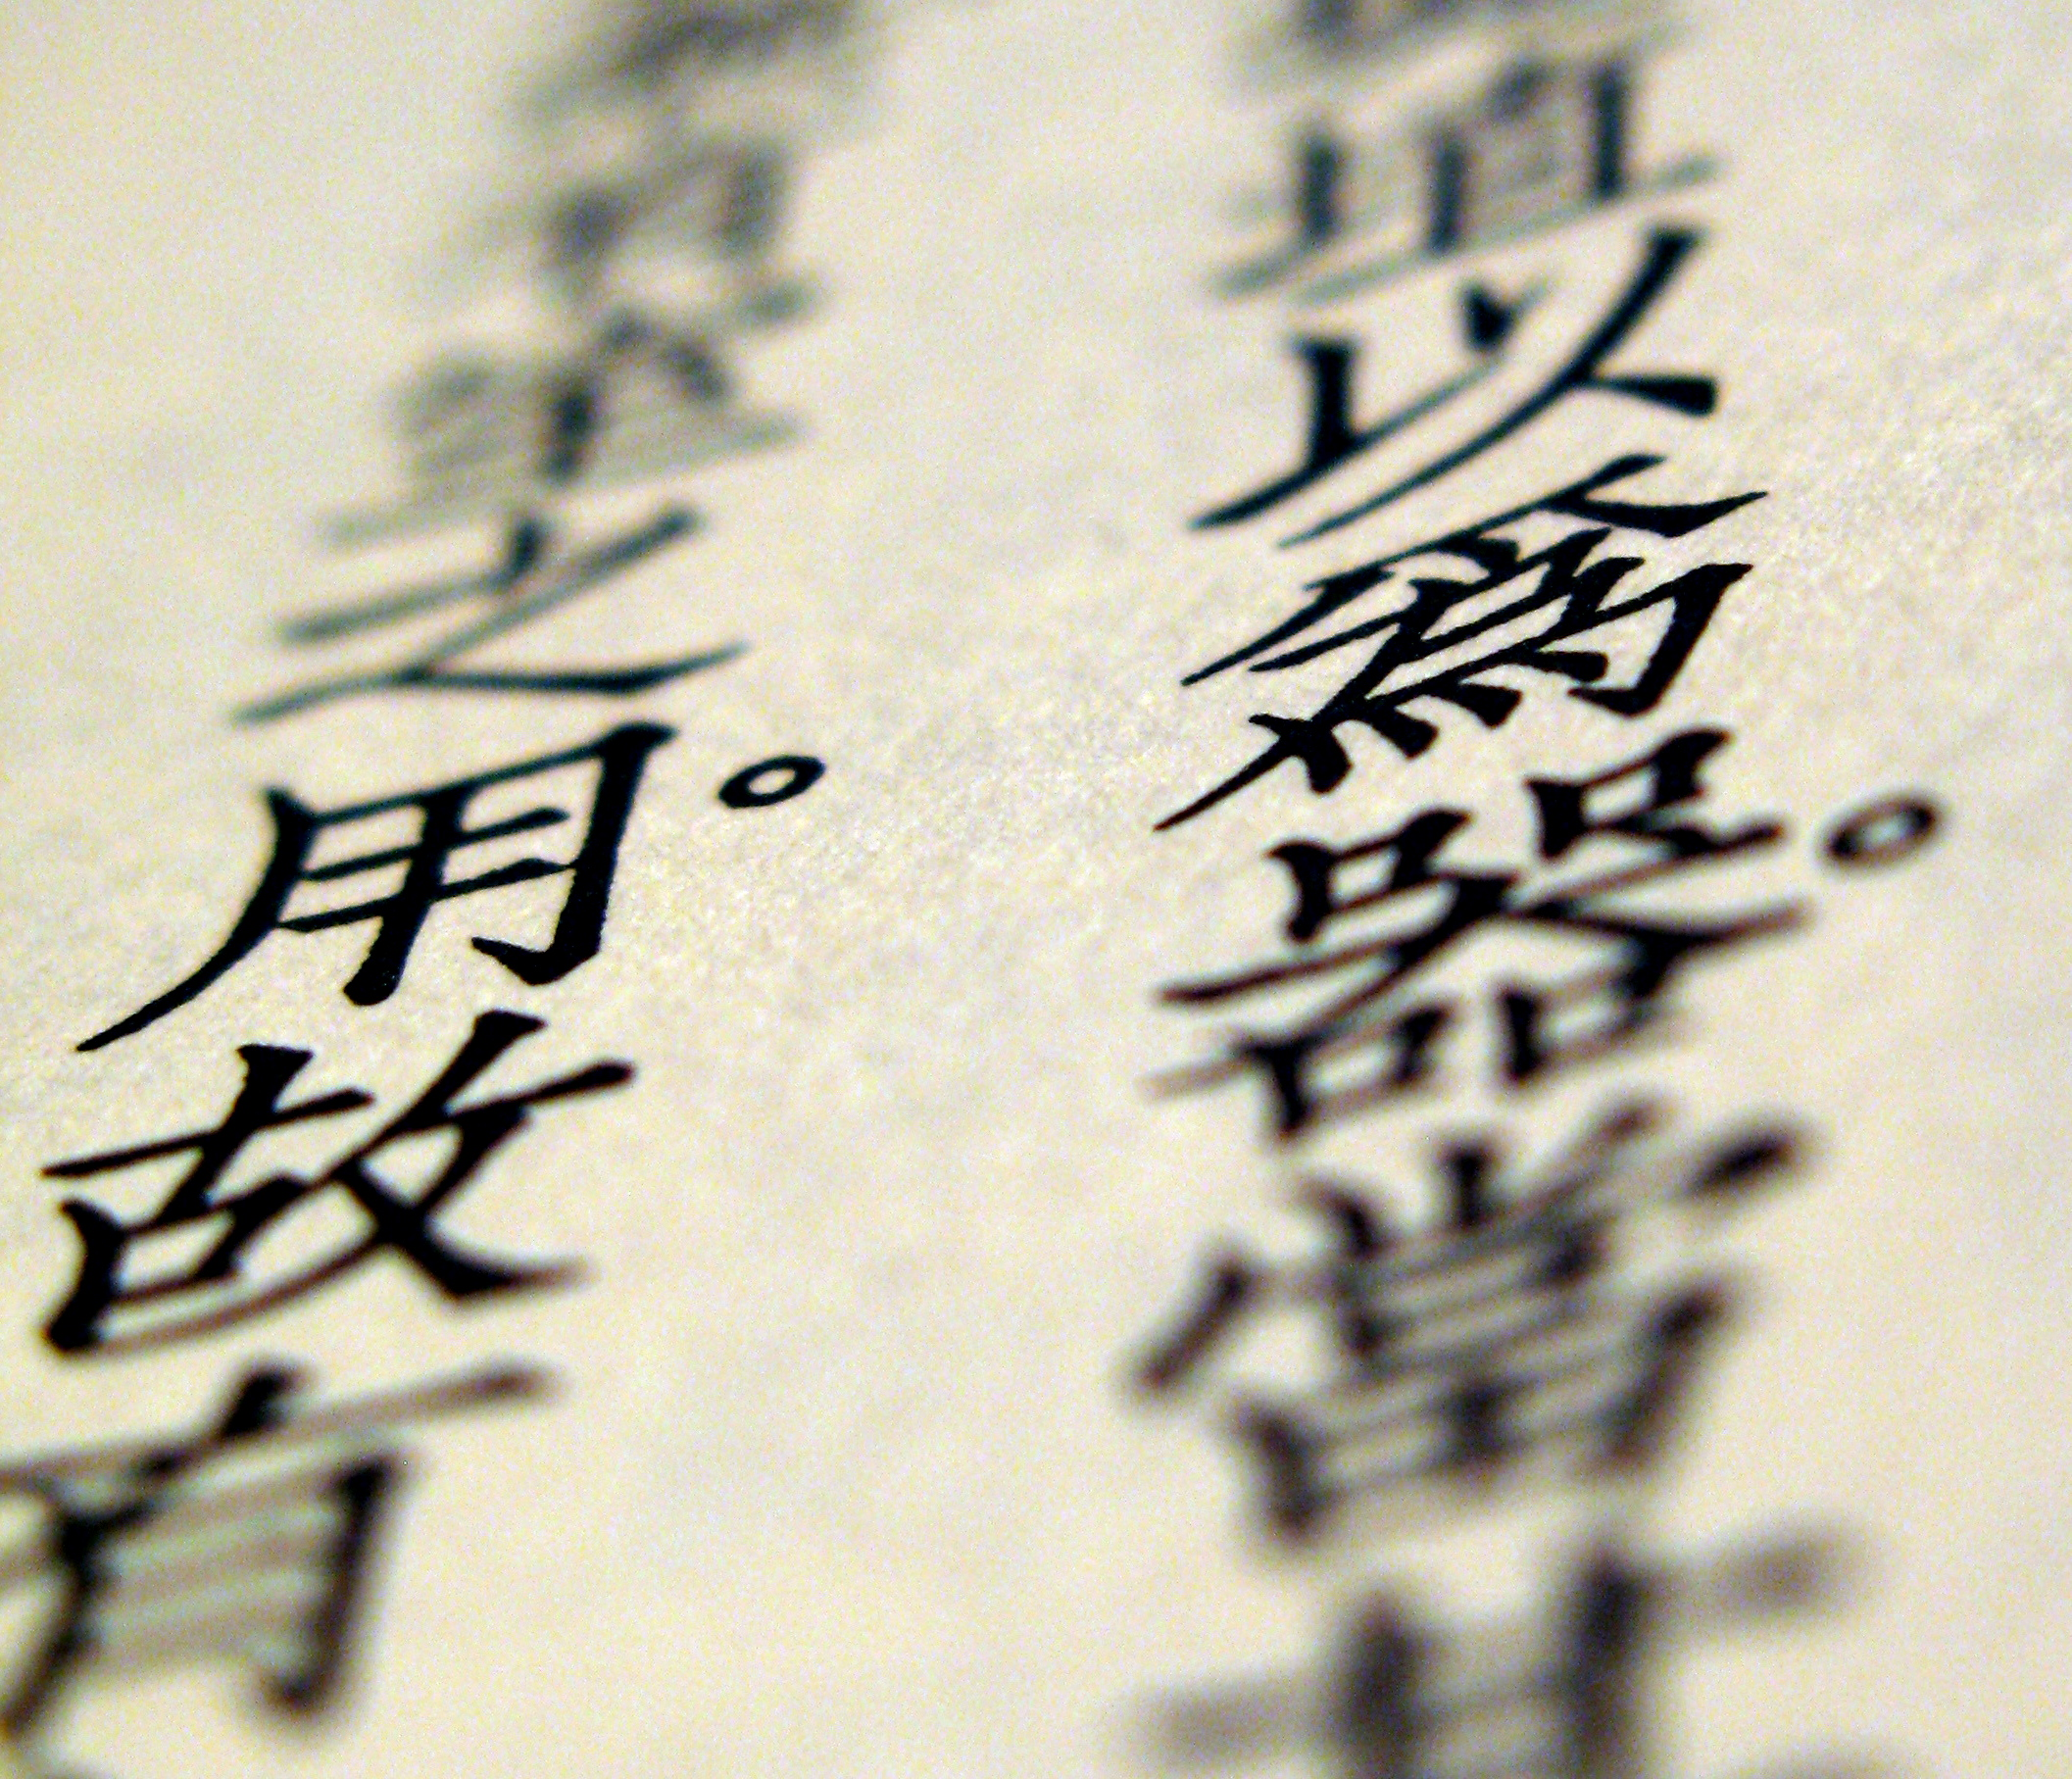 Reading Chinese characters and my progress studying the HSK word lists.